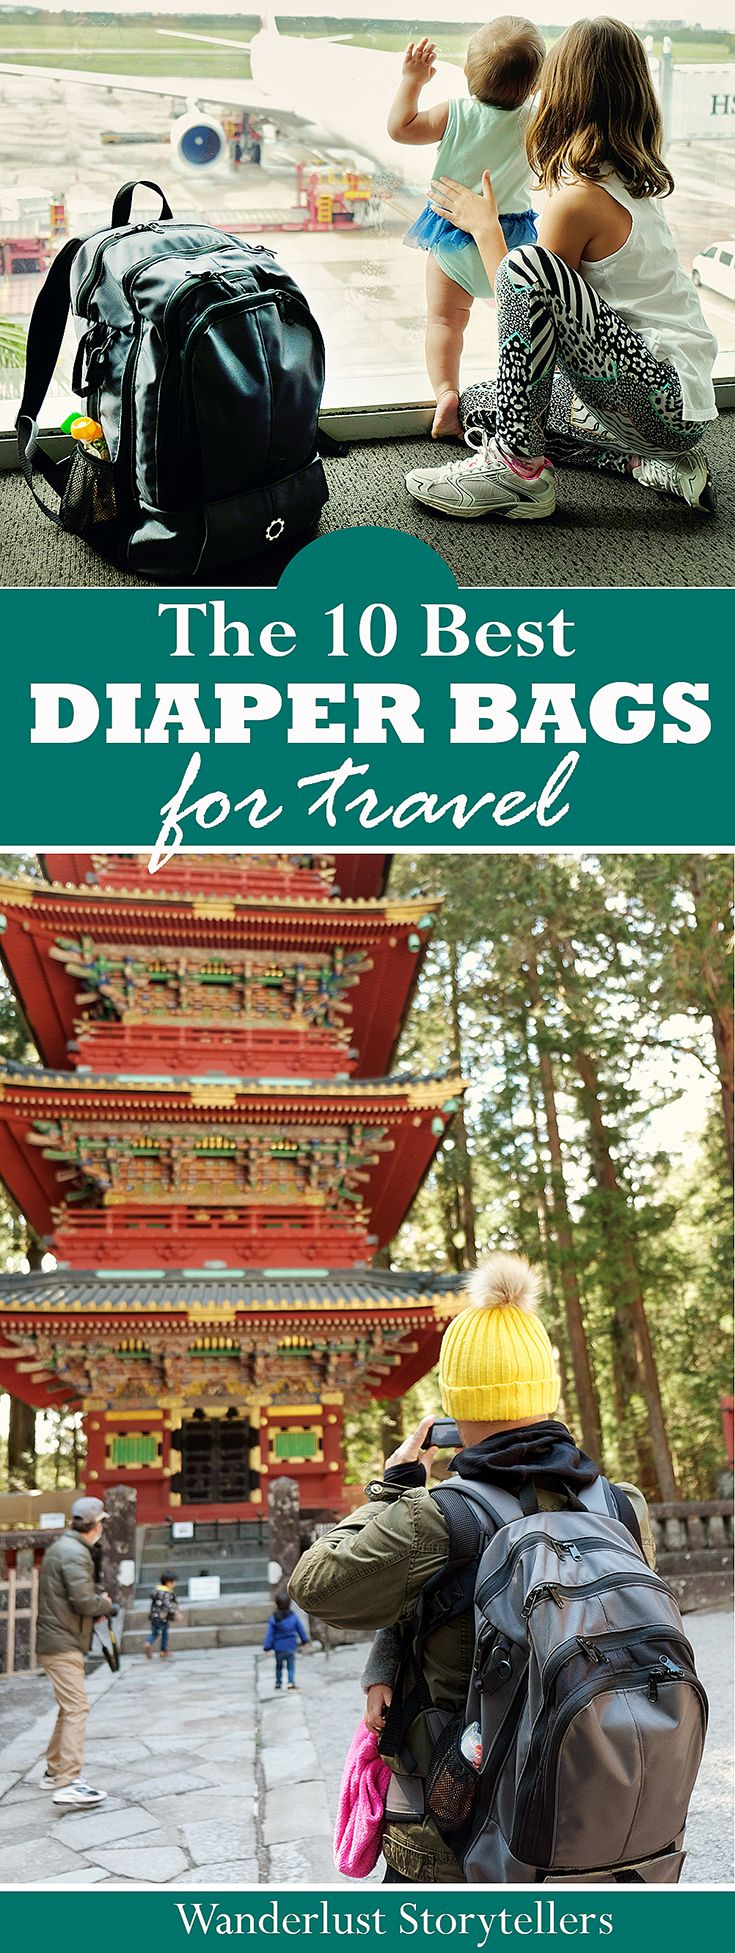 Here is a detailed post about the Top 10 Best Travel Diaper Bags. From backpacks to shoulder to 3 in 1 styles, we have the complete list for you! >>>>>>>>>>>>>>>>>>>>>>>>>>> Travel Diaper Bag Backpack | Travel Diaper Bag Ideas | Travel Diaper Bag Mom | Diaper Bag for Travel | Travel Diaper Bag Black | Travel Diaper Bag Grey | Backpack Travel Diaper Bag | 3 in 1 Diaper Bag